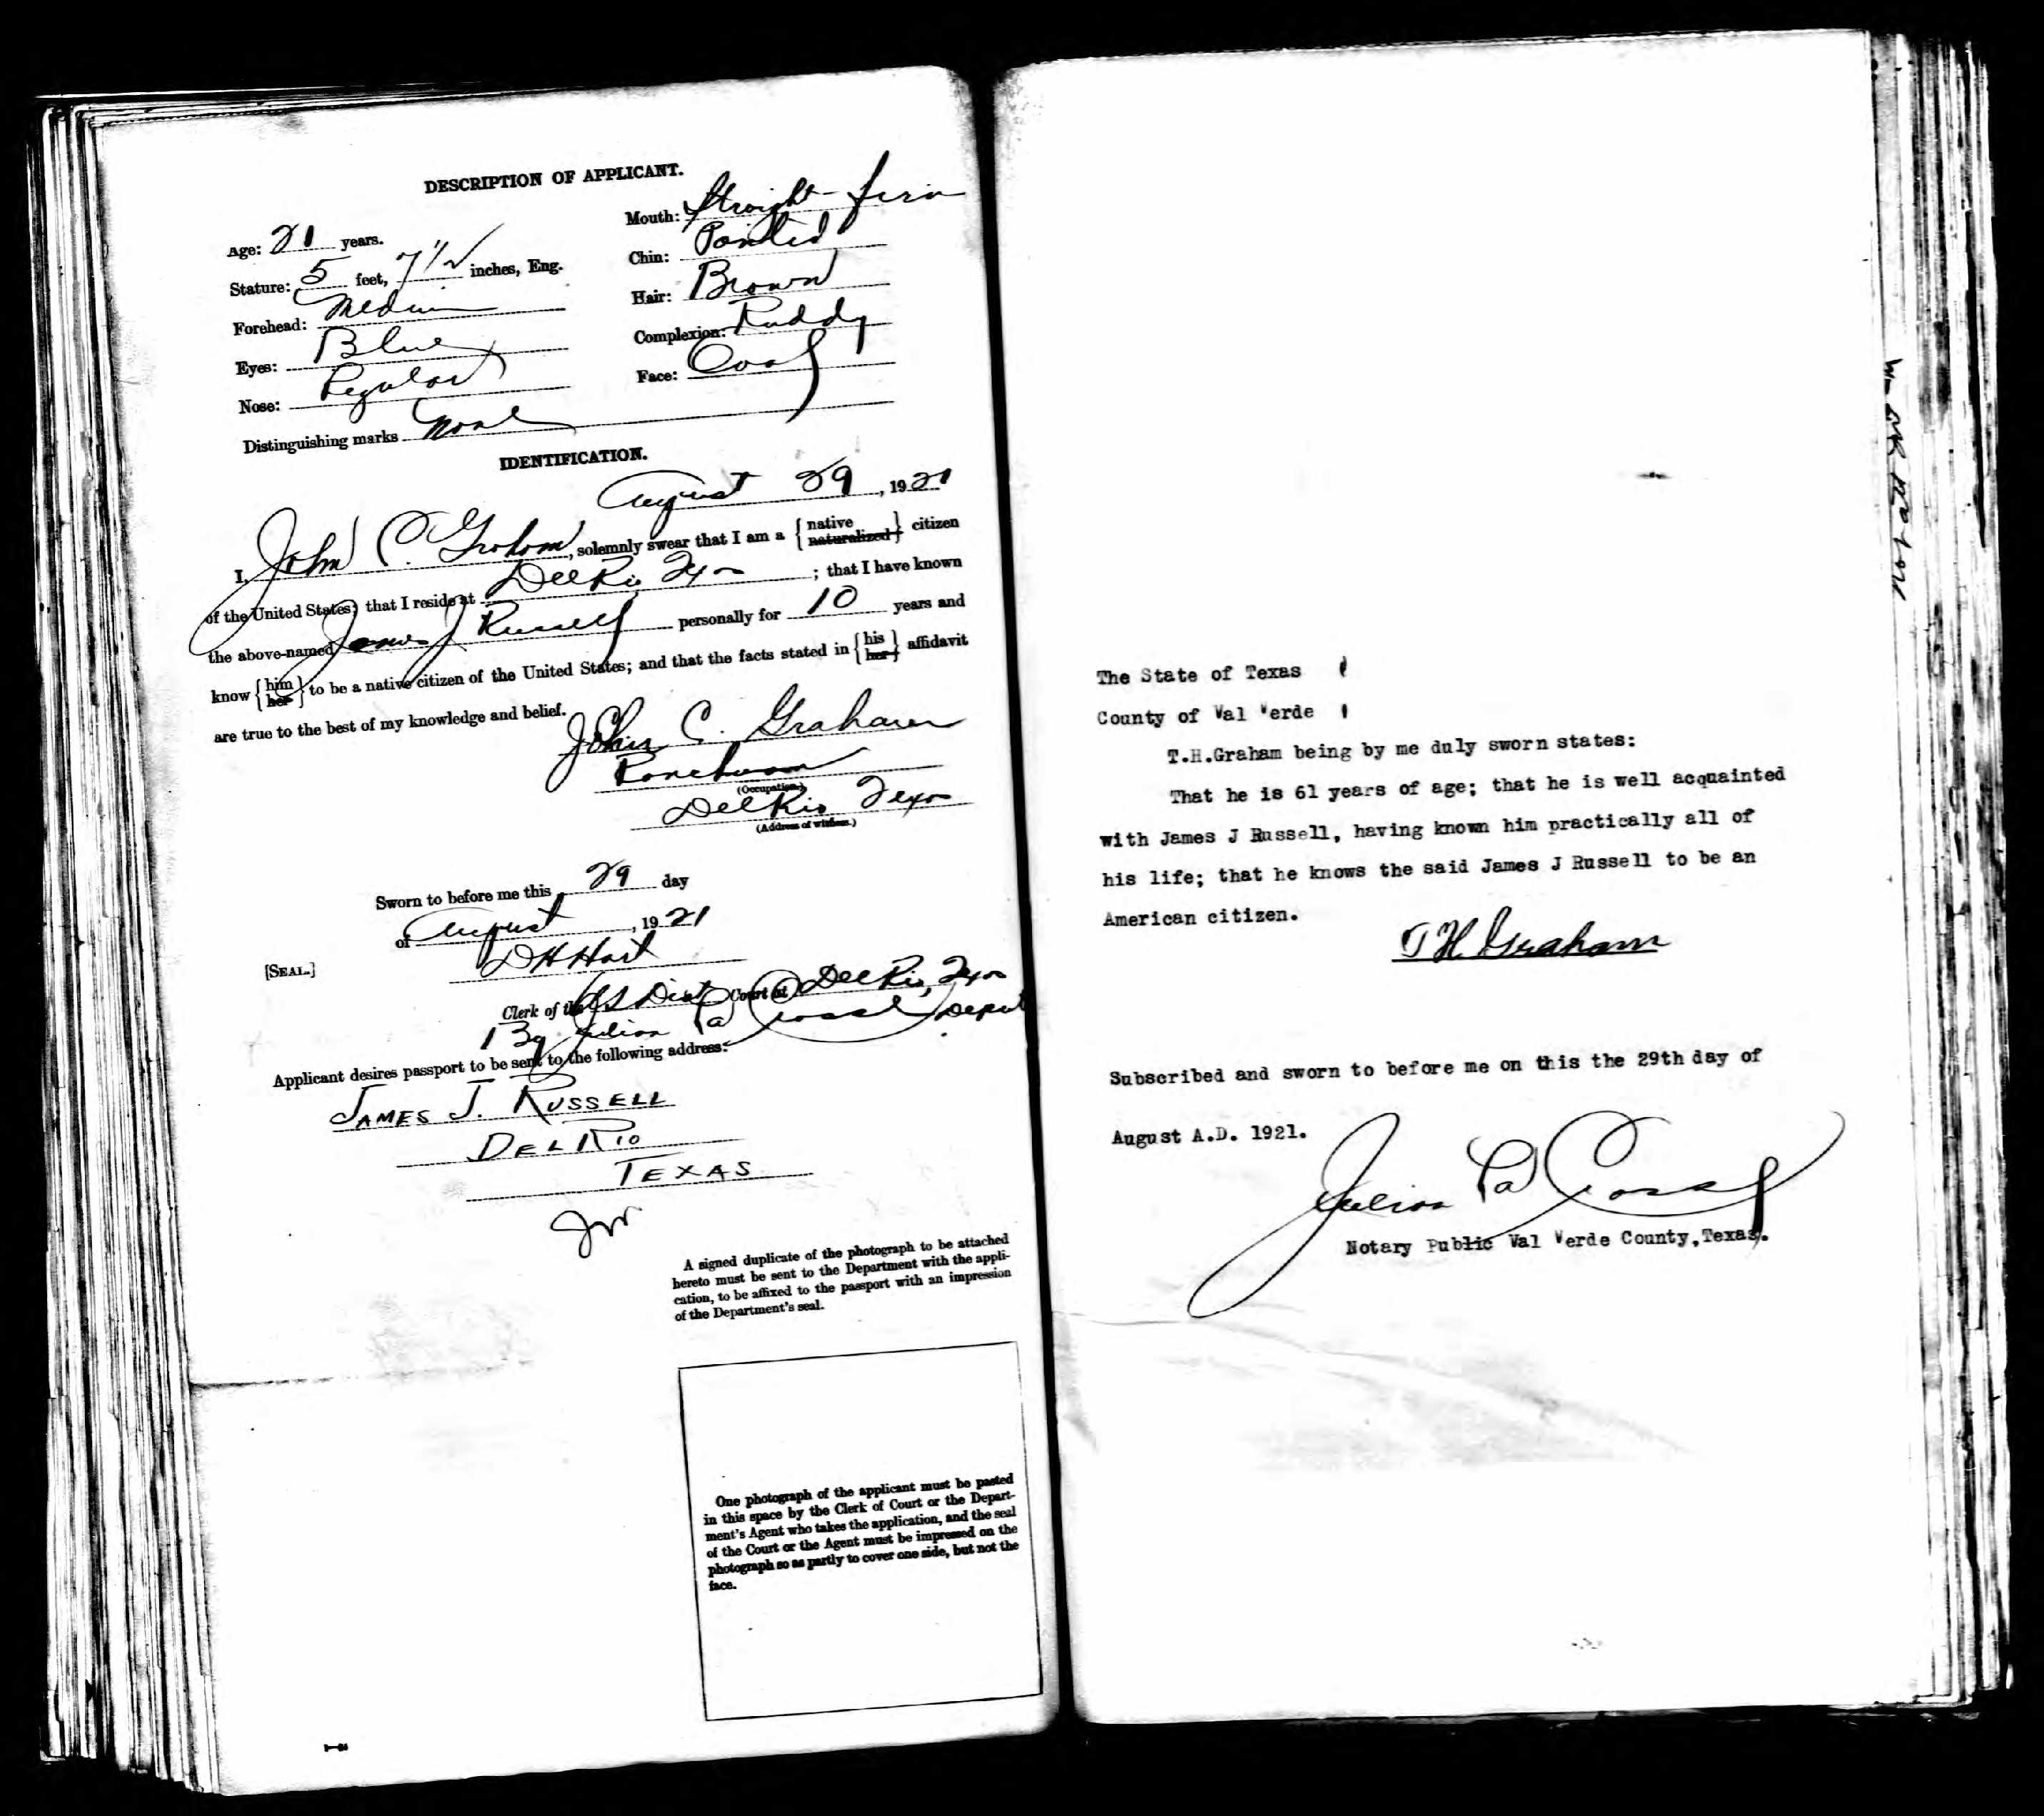 People Who Applied For Passports With Menard County Connections 1920